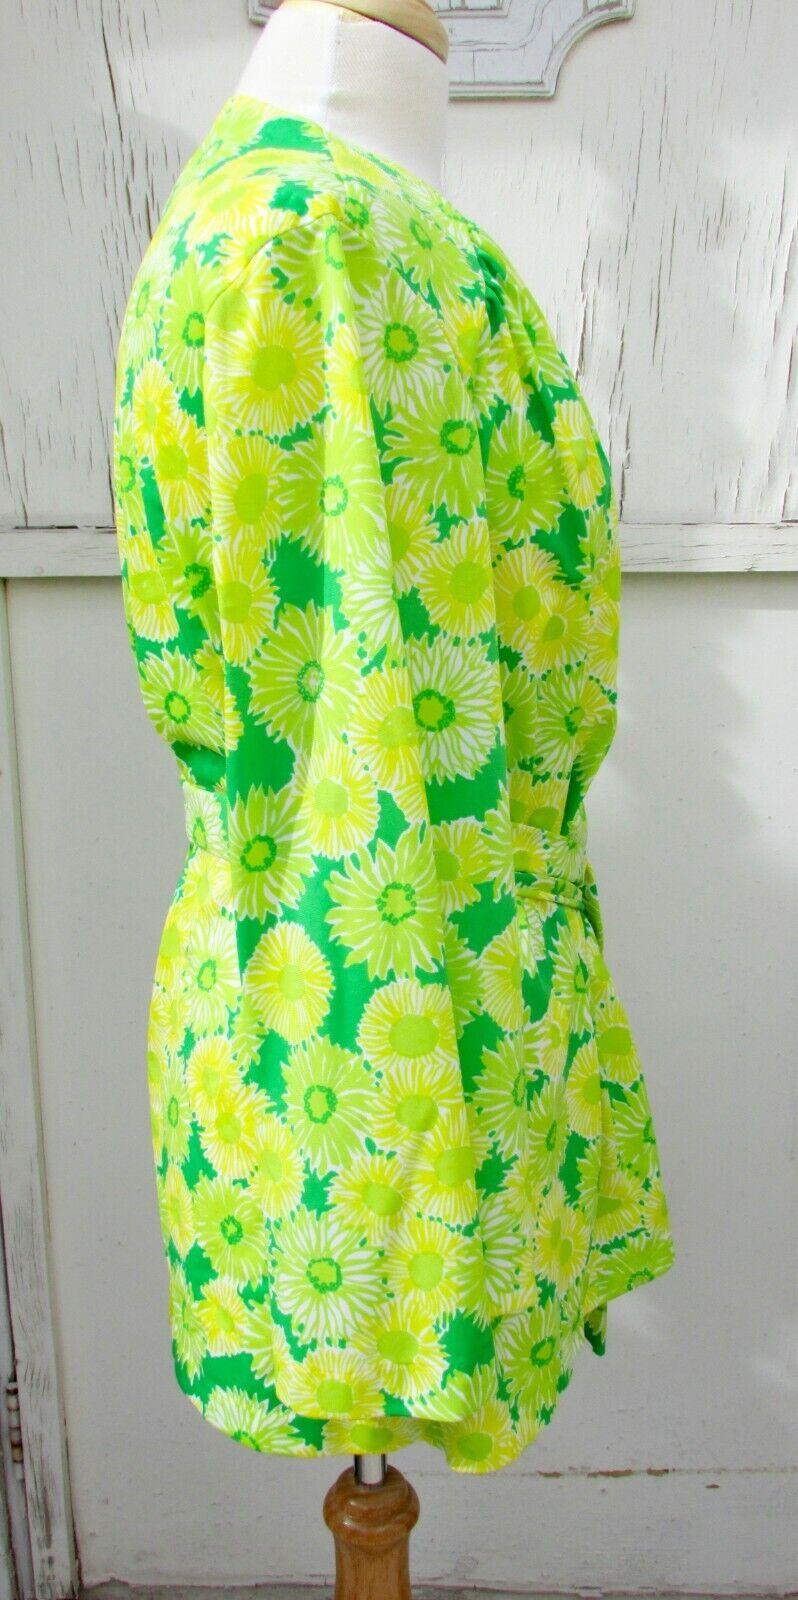 GREEN NEON VTG 70's Swimwear Cover Up-Perfection … - image 4